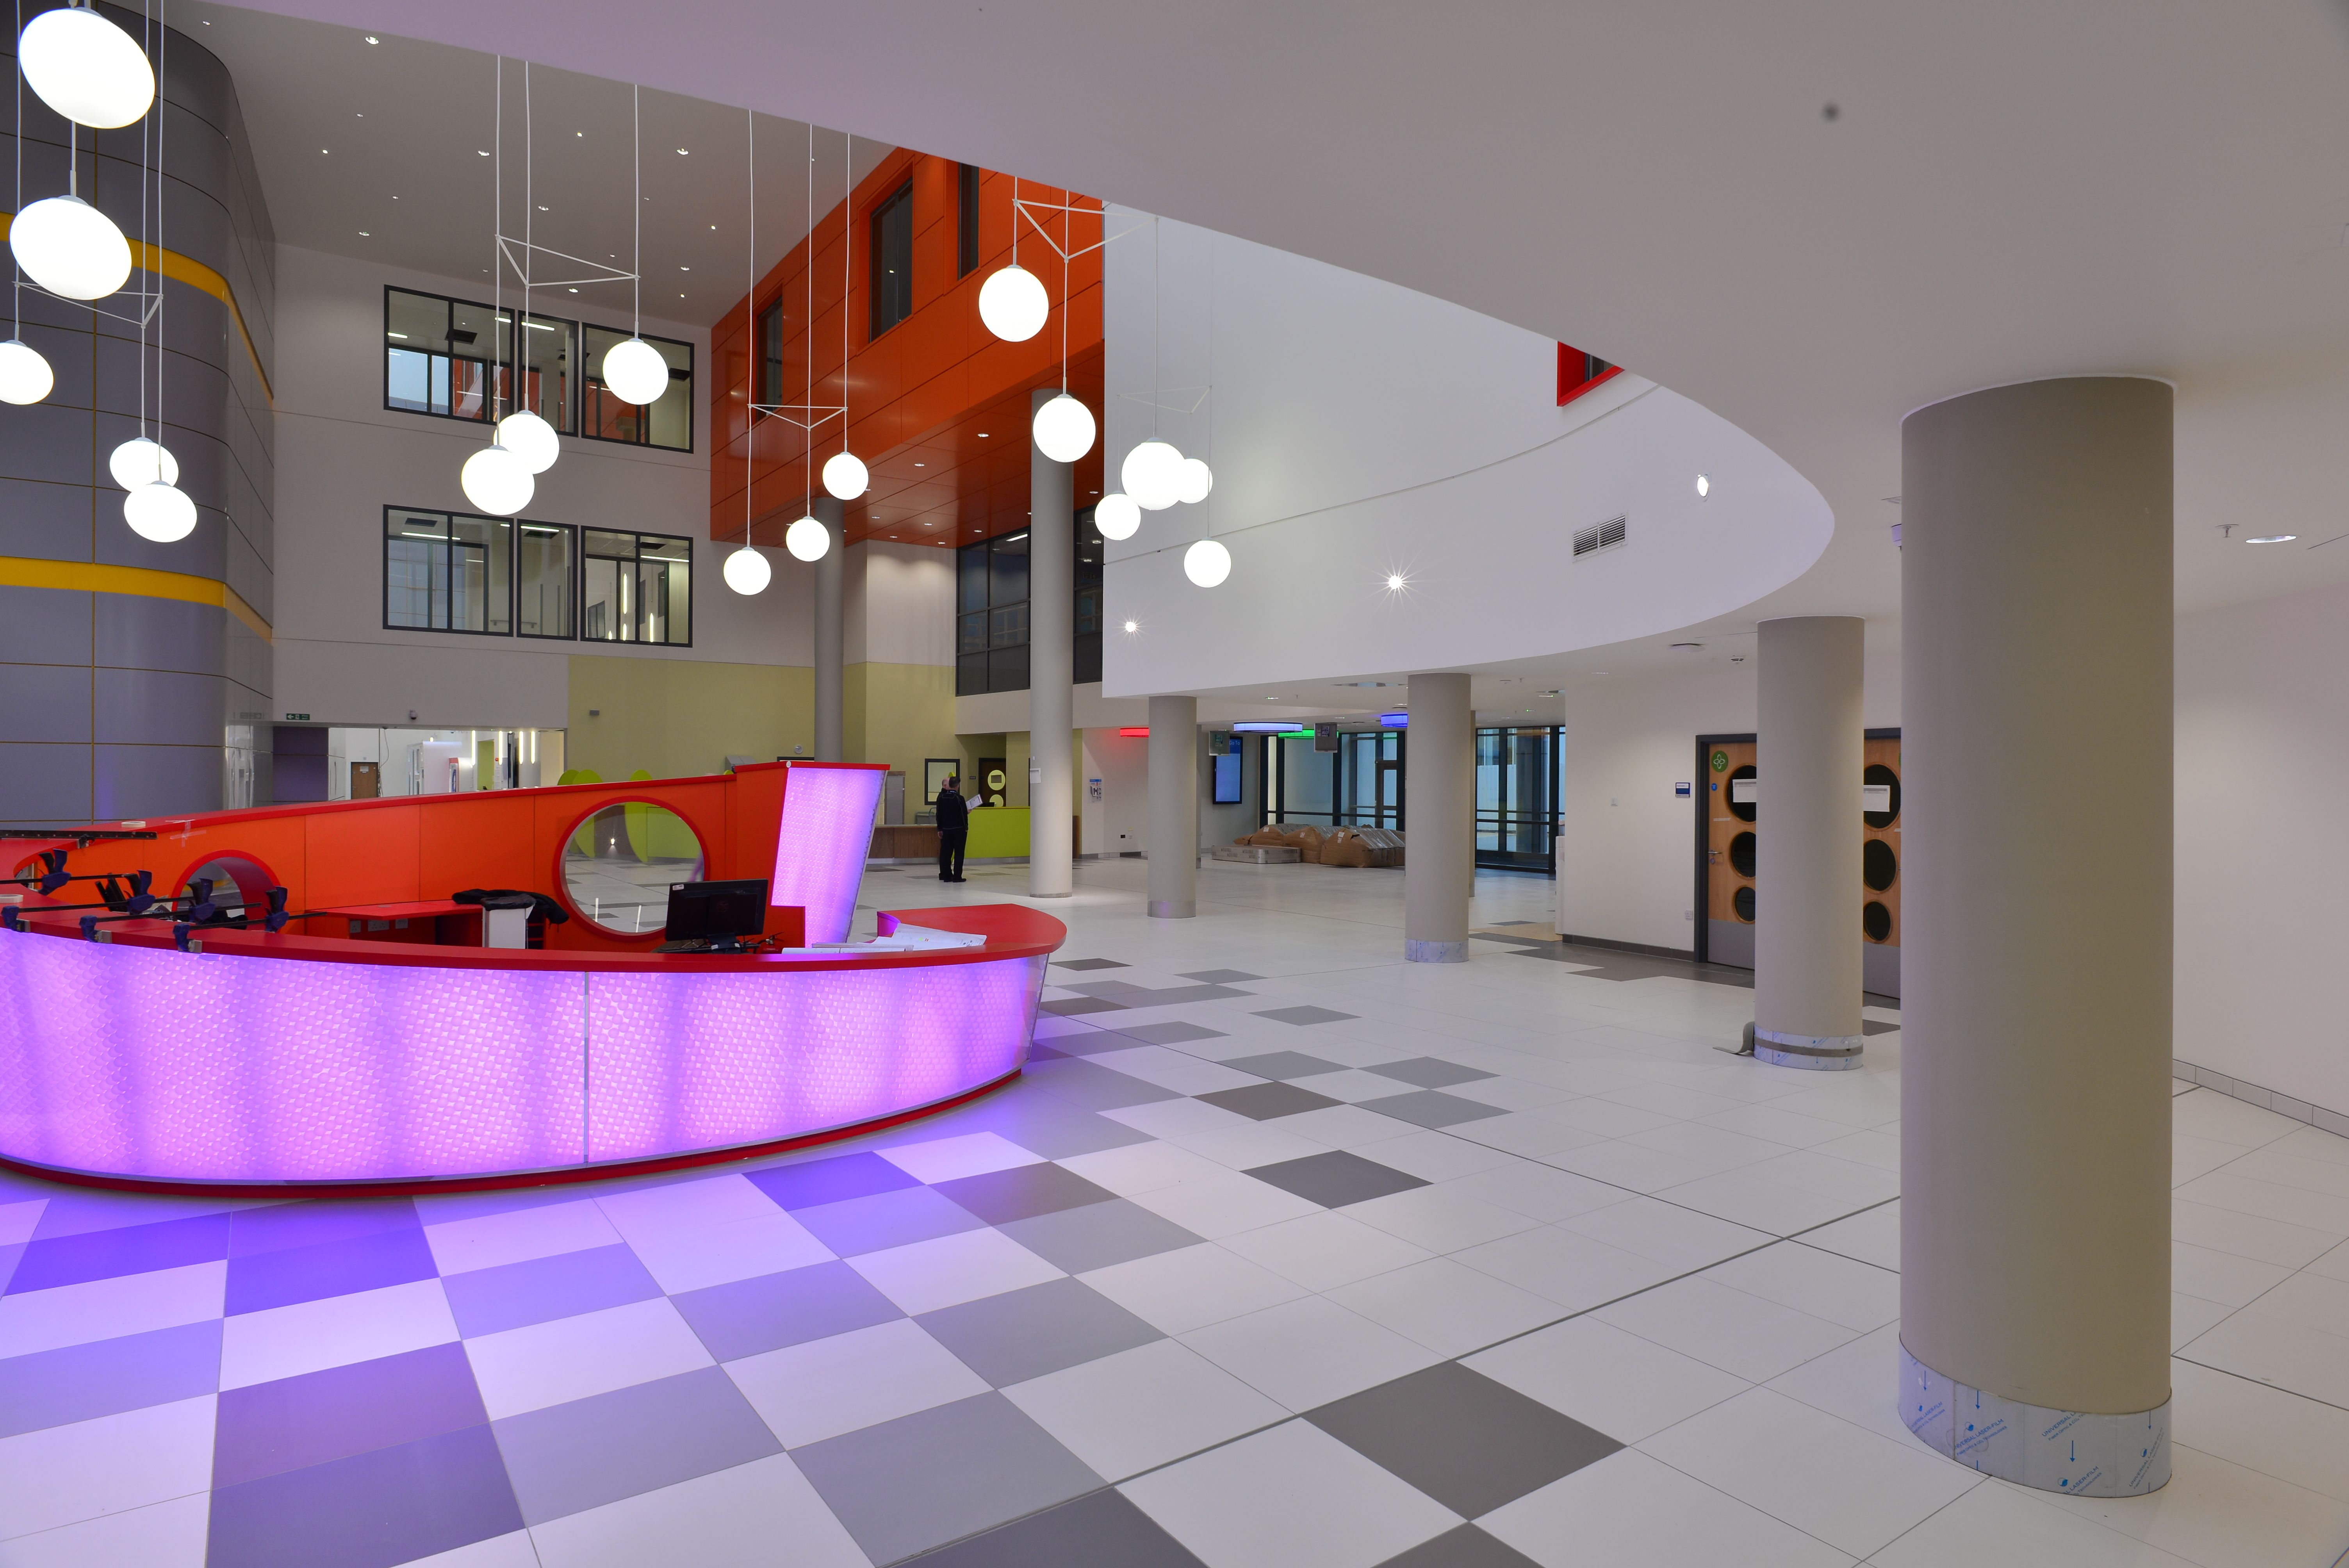 Armstrong drywall grid at queen elizabeth university hospital queen elizabeth university hospital glasgow by ibi ceilings using armstrong group drywall grid system flat and a range of other armstrong products dailygadgetfo Image collections